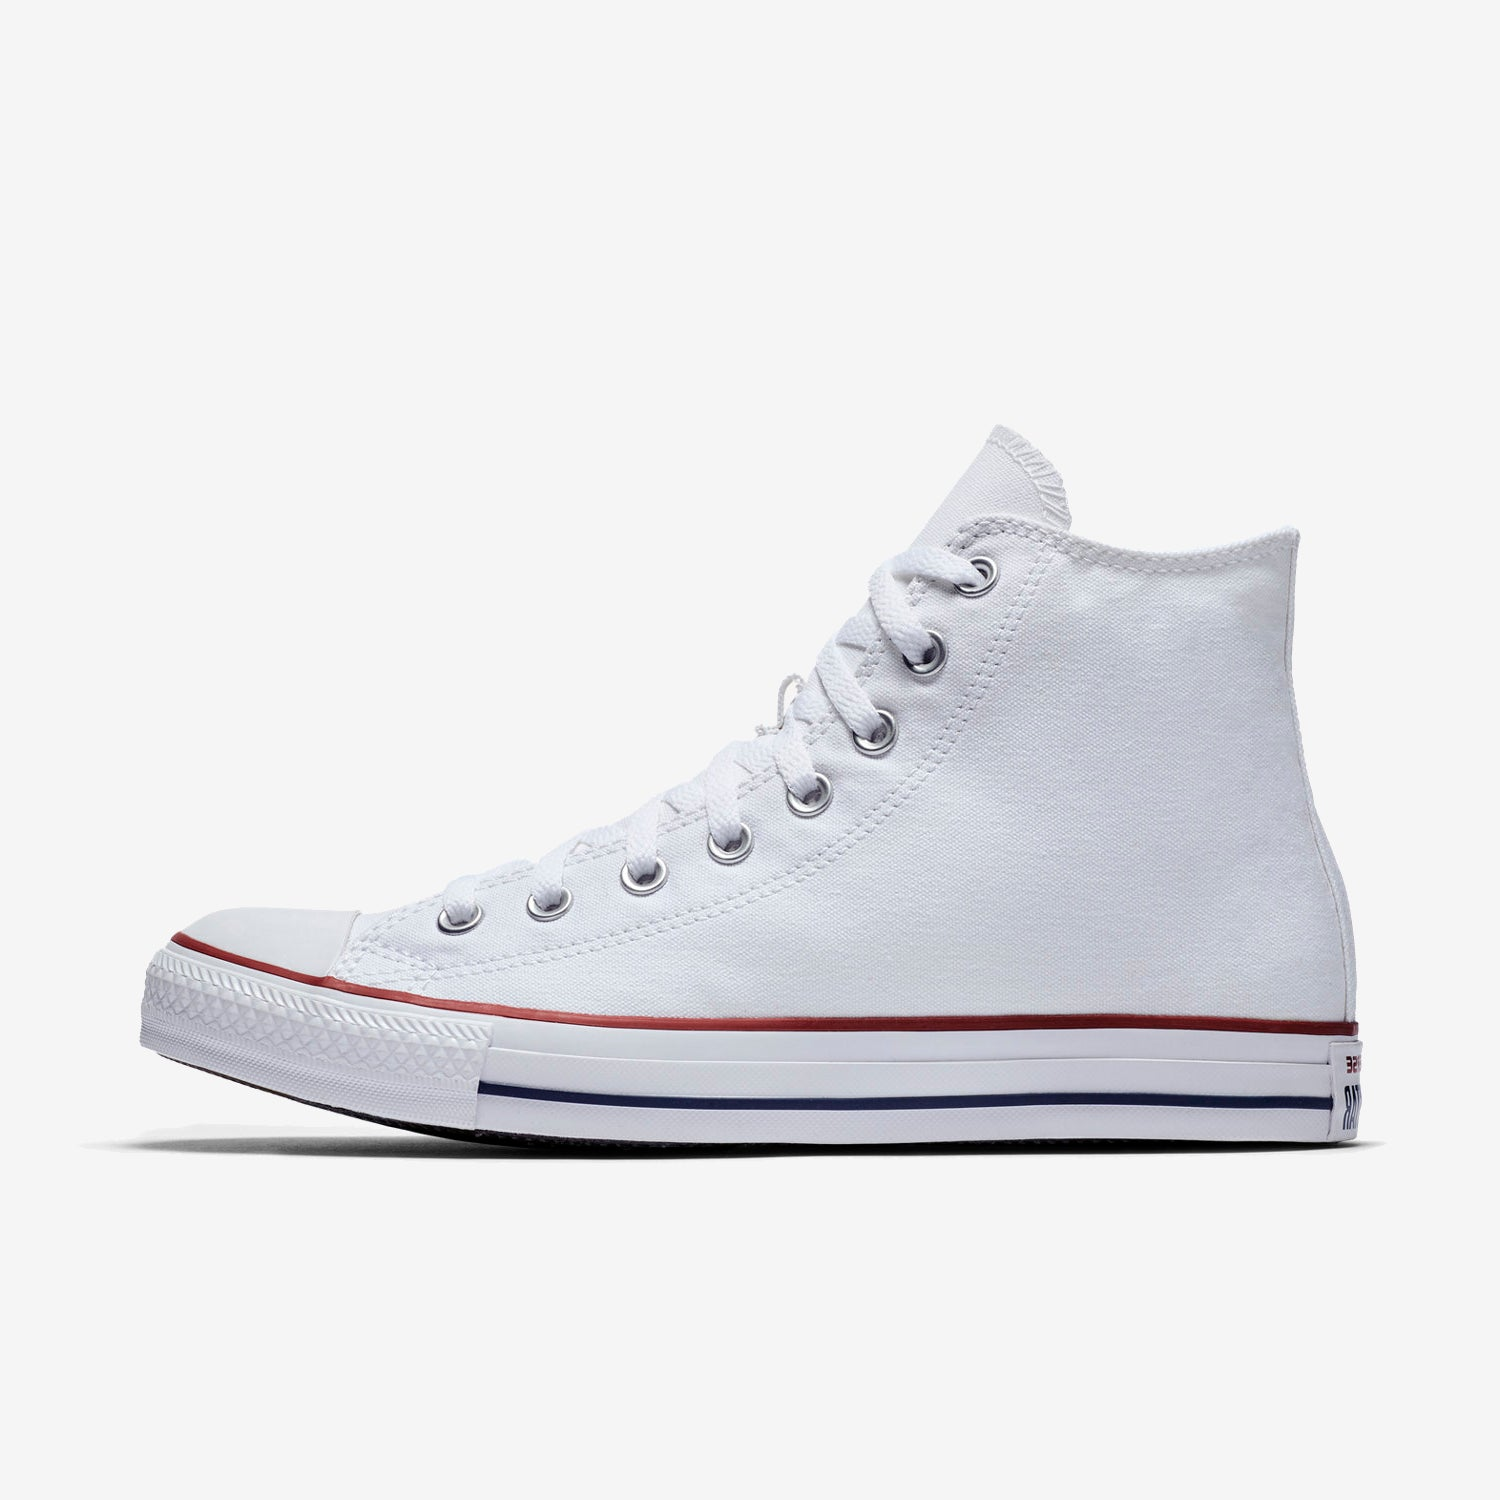 9519c9bf02e0 Custom Converse Classic White High Tops – Relentless